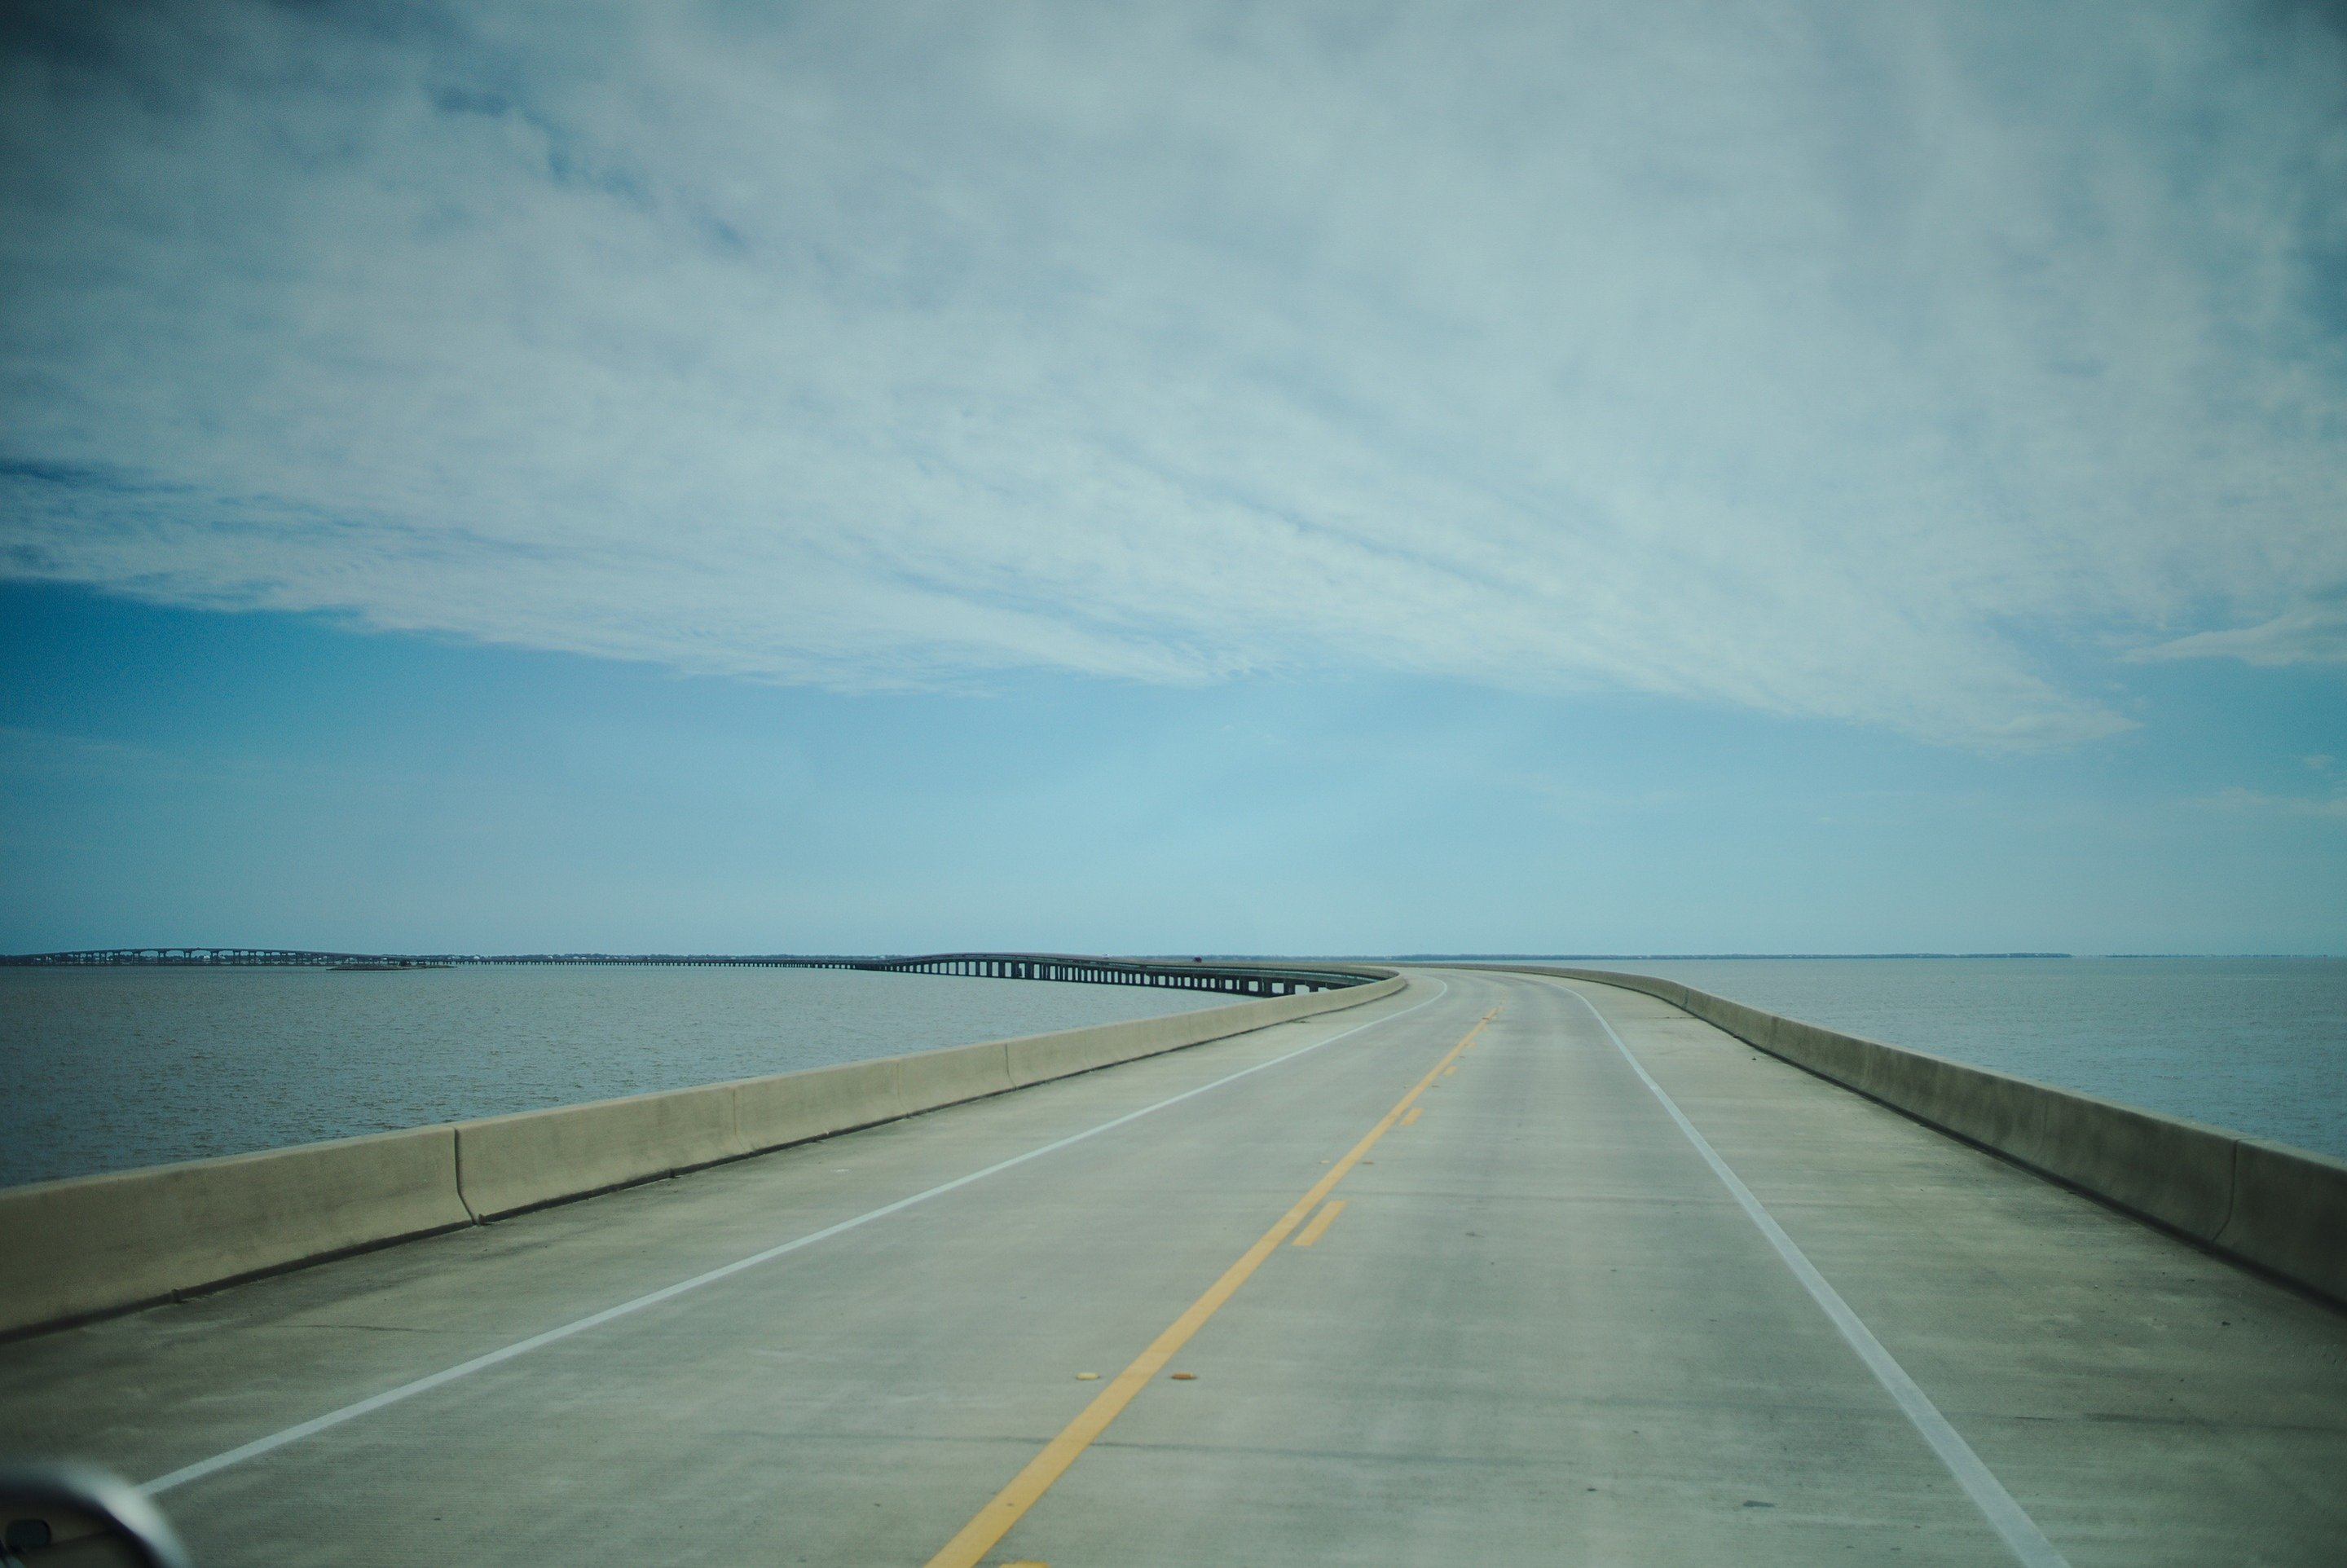 bridge to st george island photographed by luxagraf